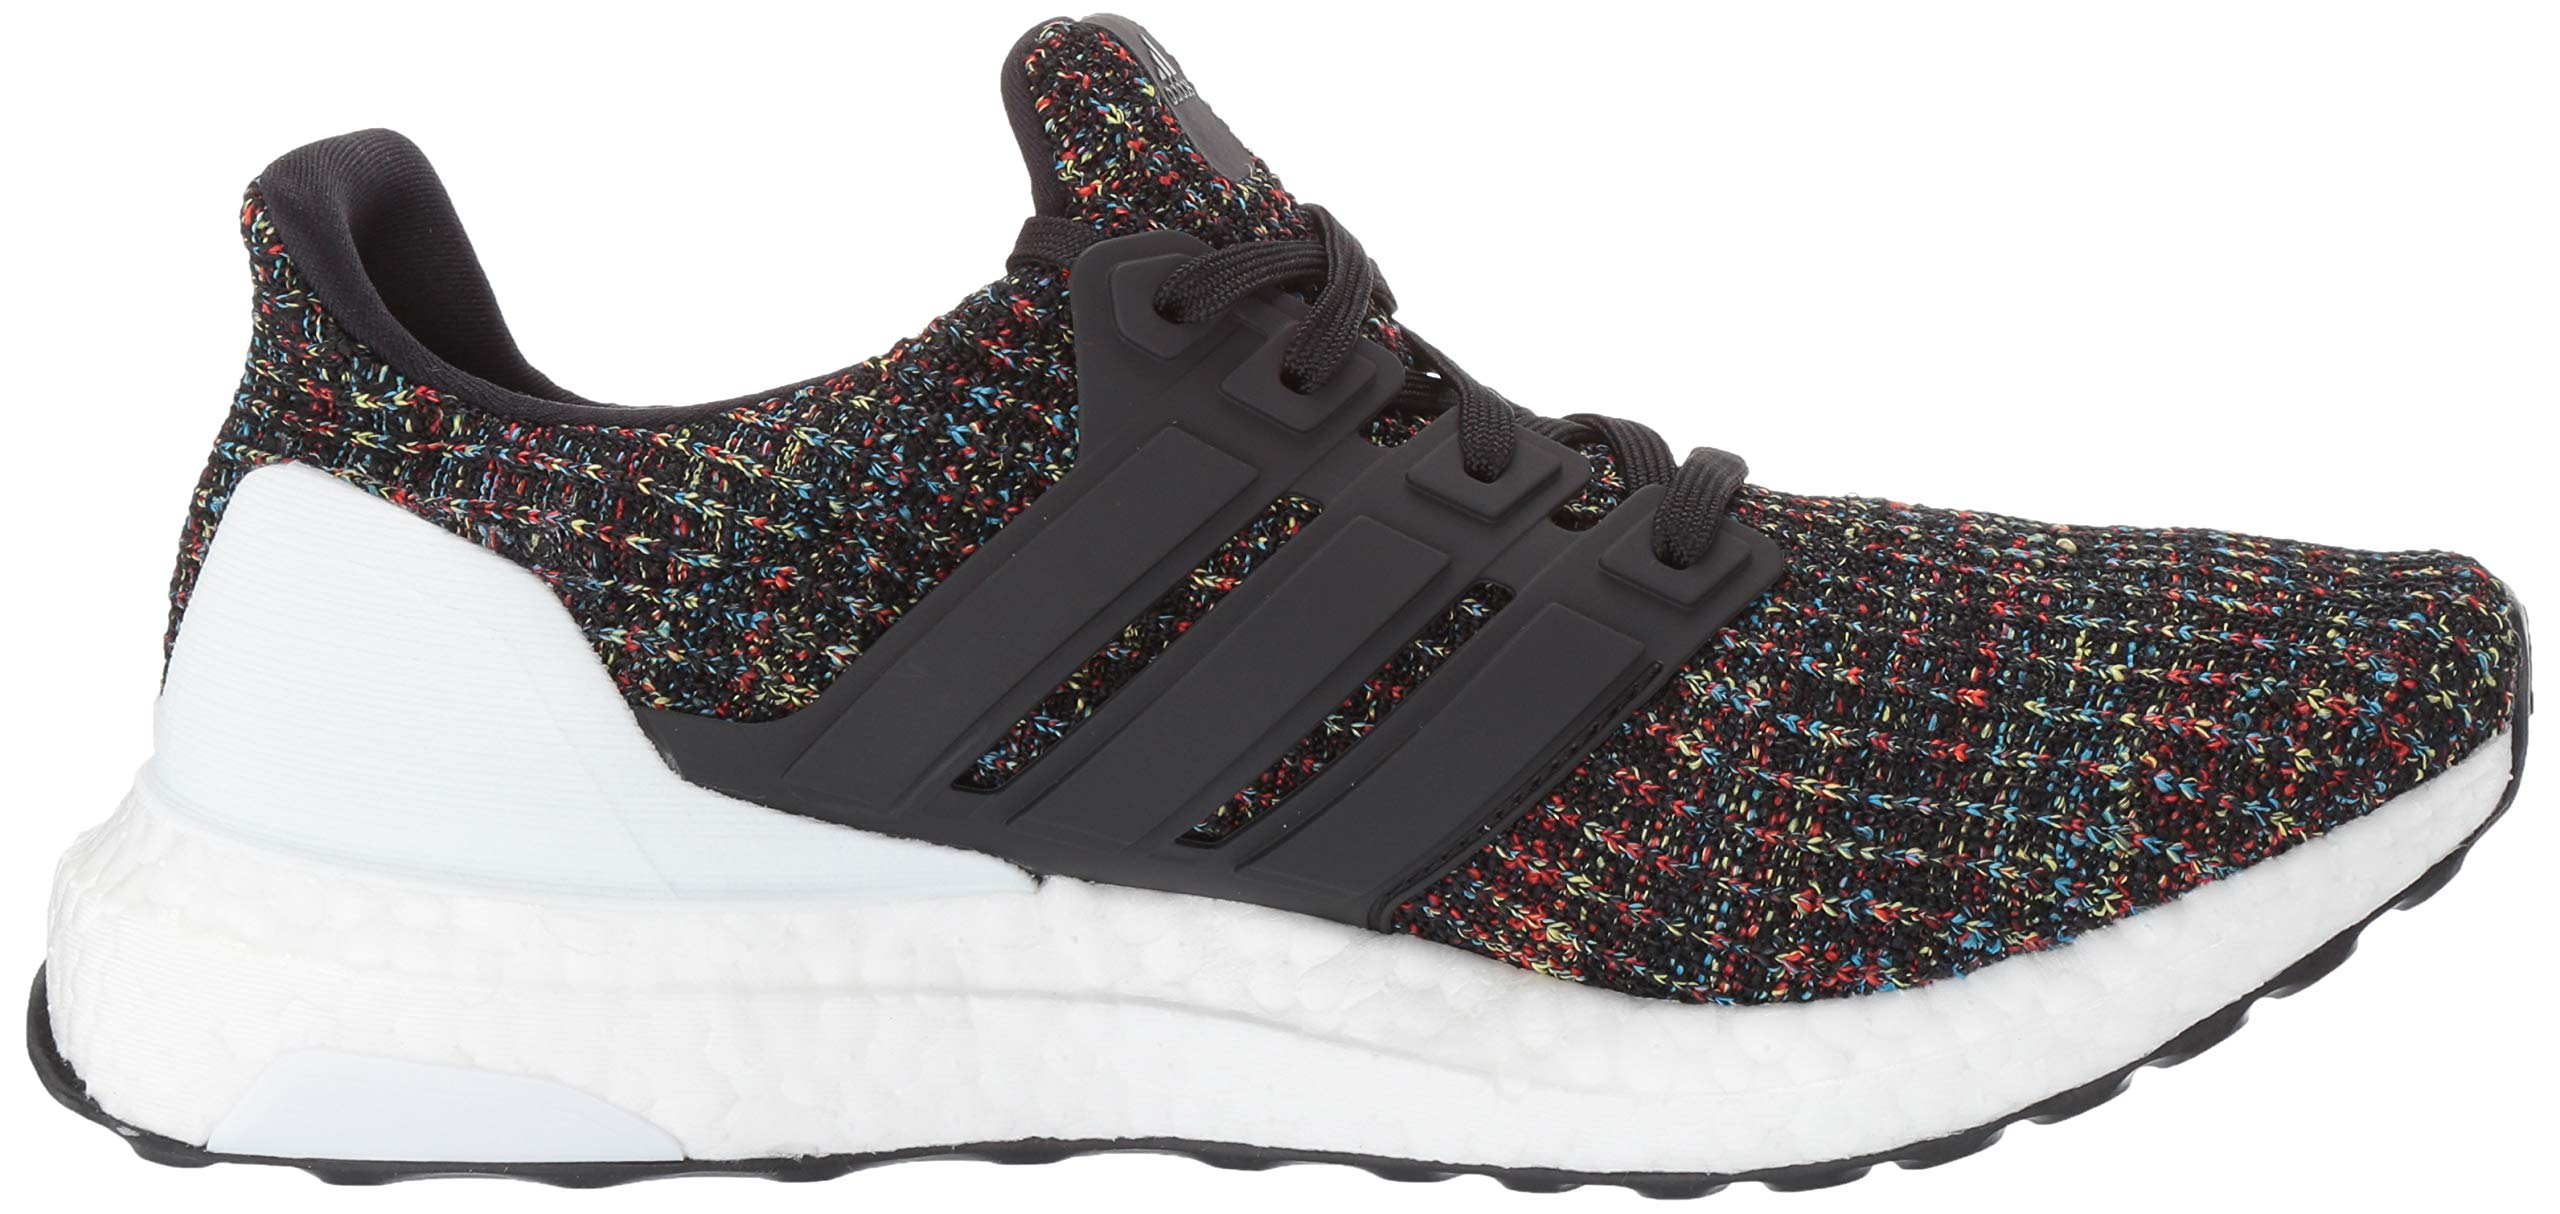 adidas Unisex Ultraboost, Black/White/Active red, 4 M US Big Kid by adidas (Image #7)